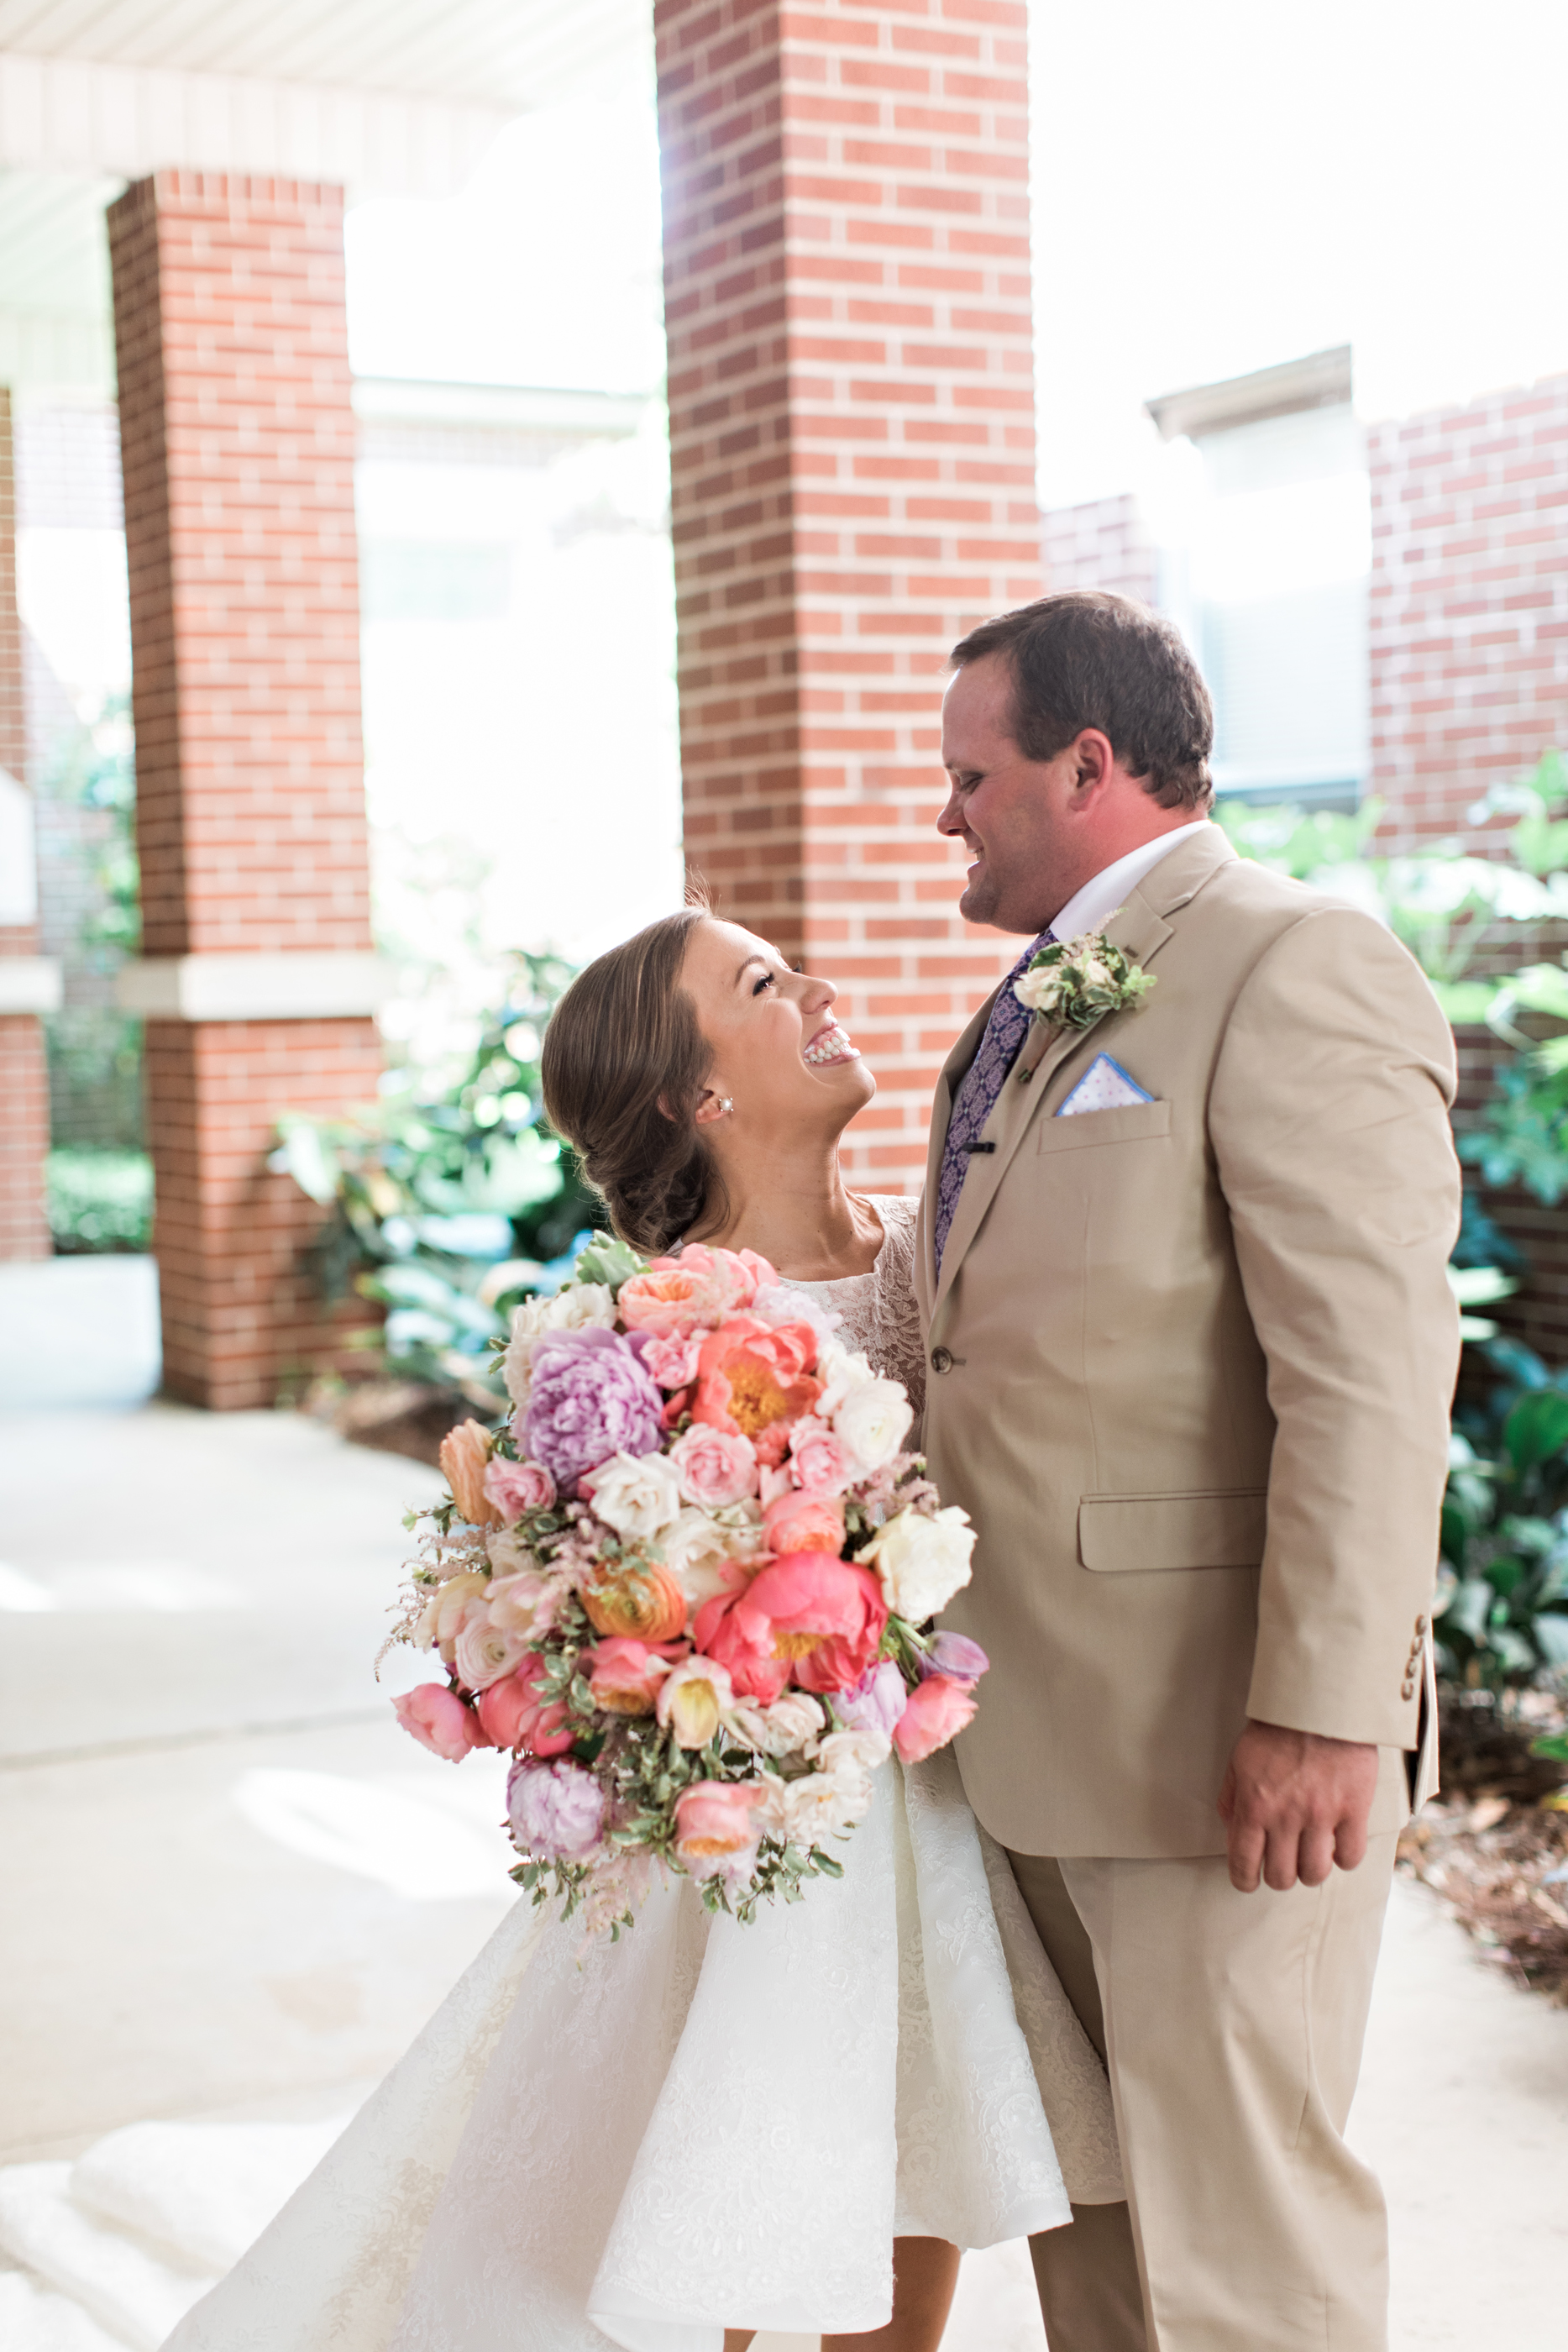 Alabama-Wedding-Photographers-Nick-Drollette-Hailey and Reed-109.jpg